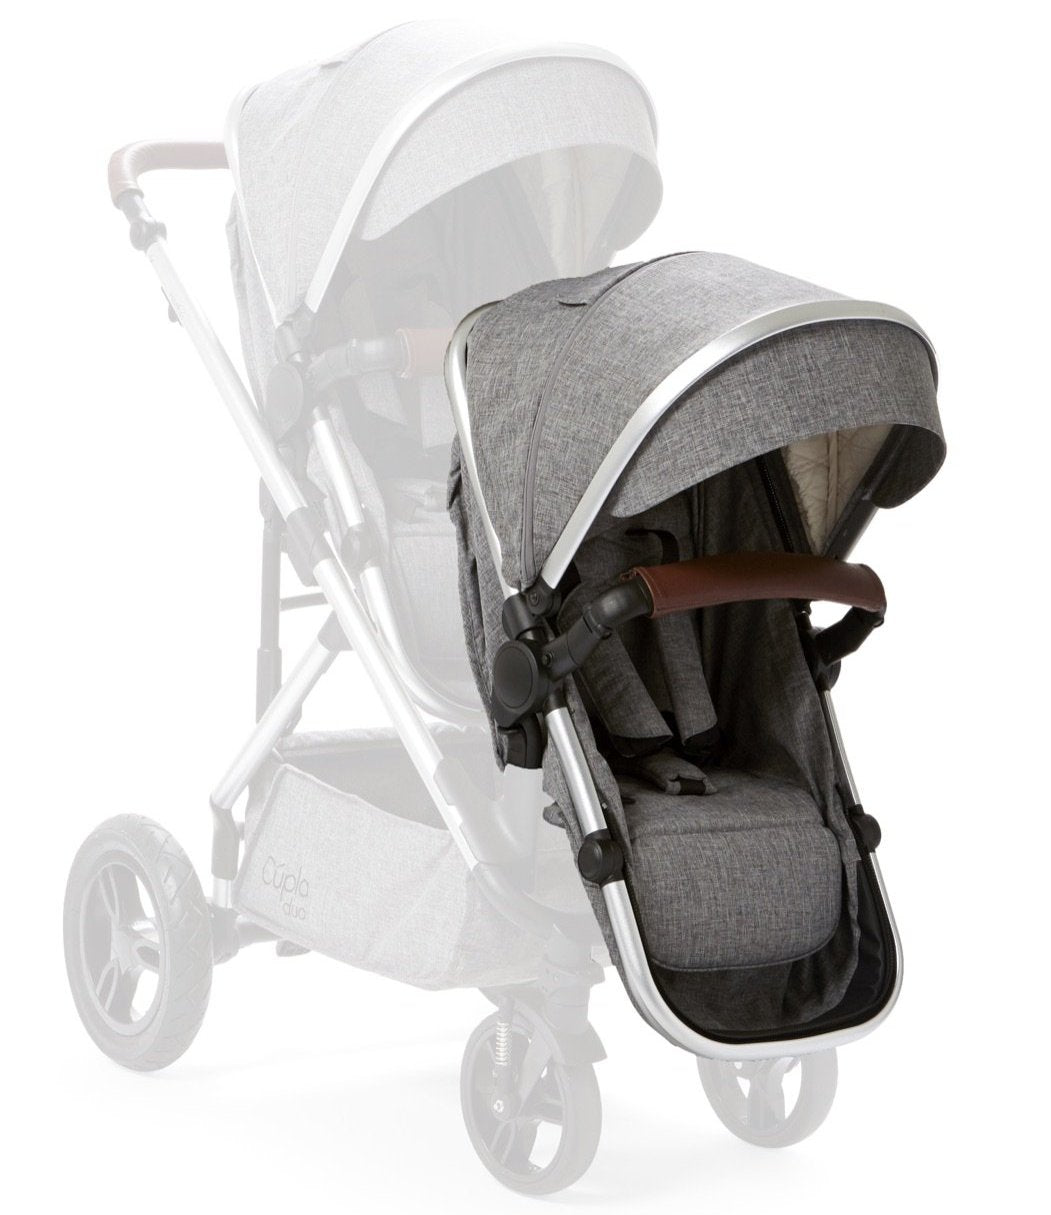 Baby Elegance Cupla Duo Second Seat, Rain Cover & Front Adaptors - Grey